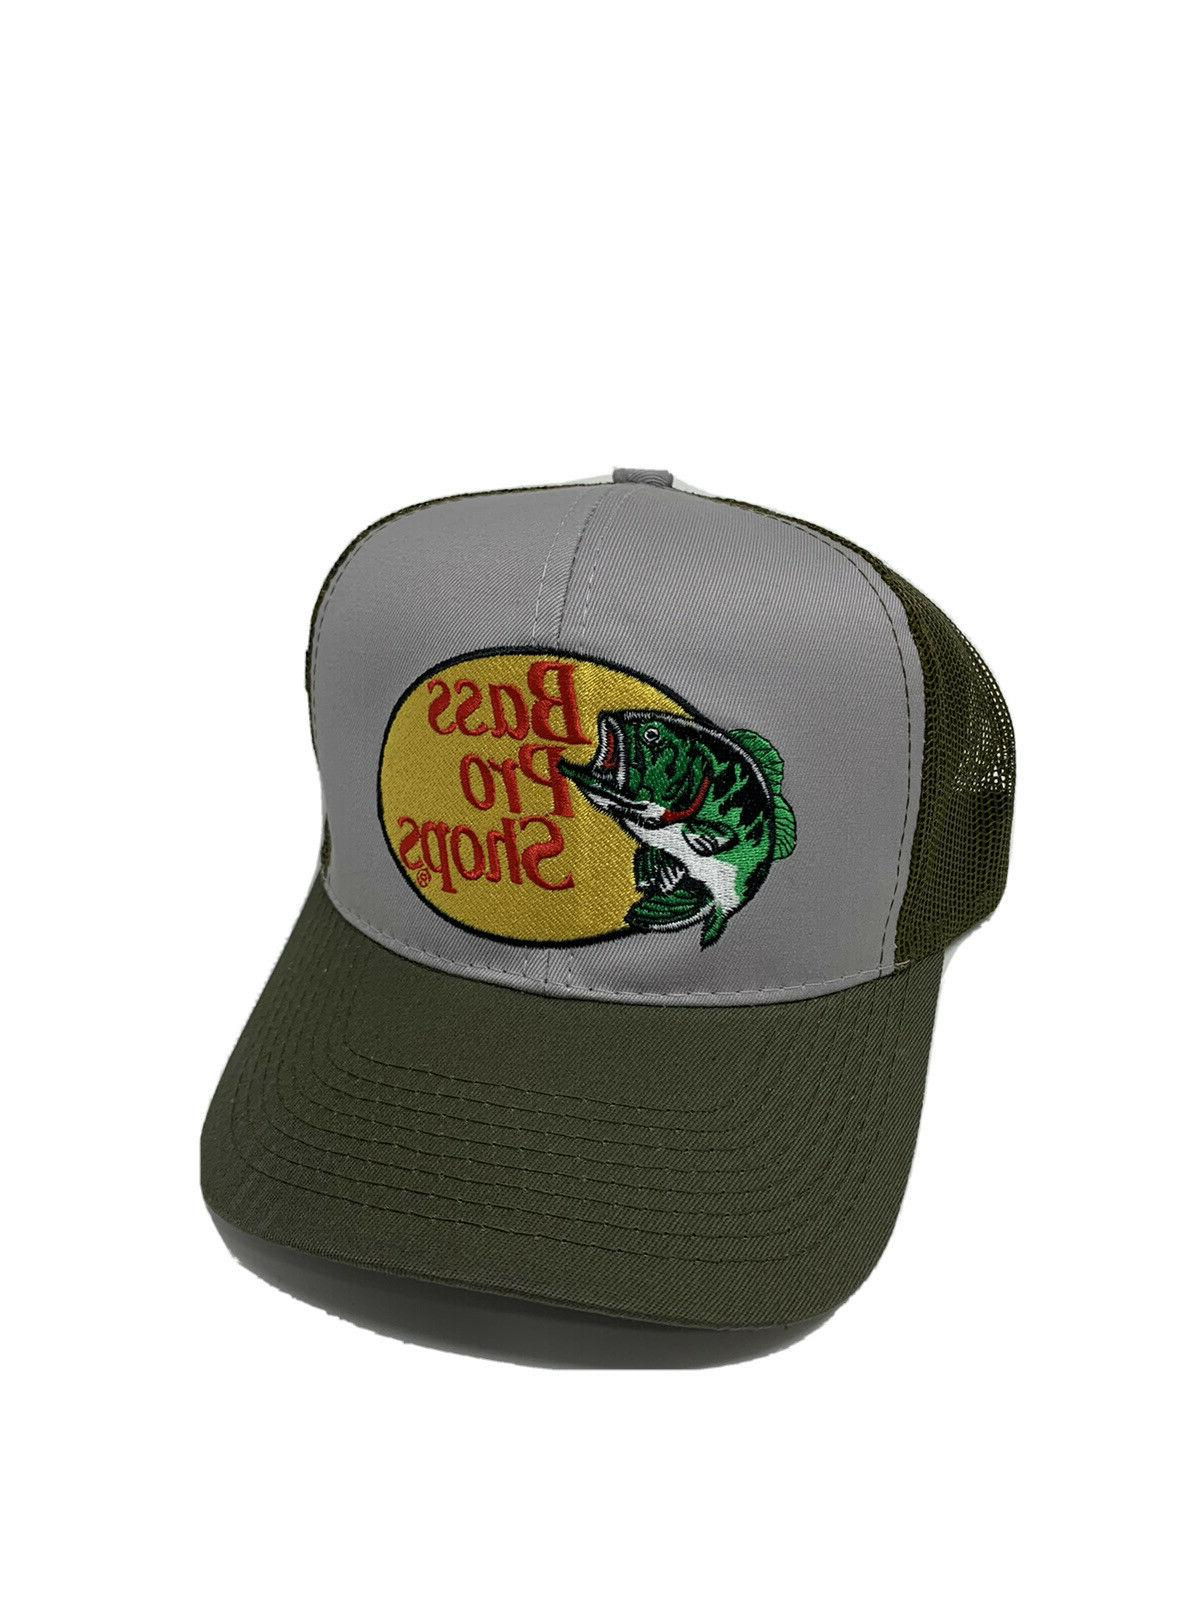 Bass Embroidered Mesh Hunting Trucker